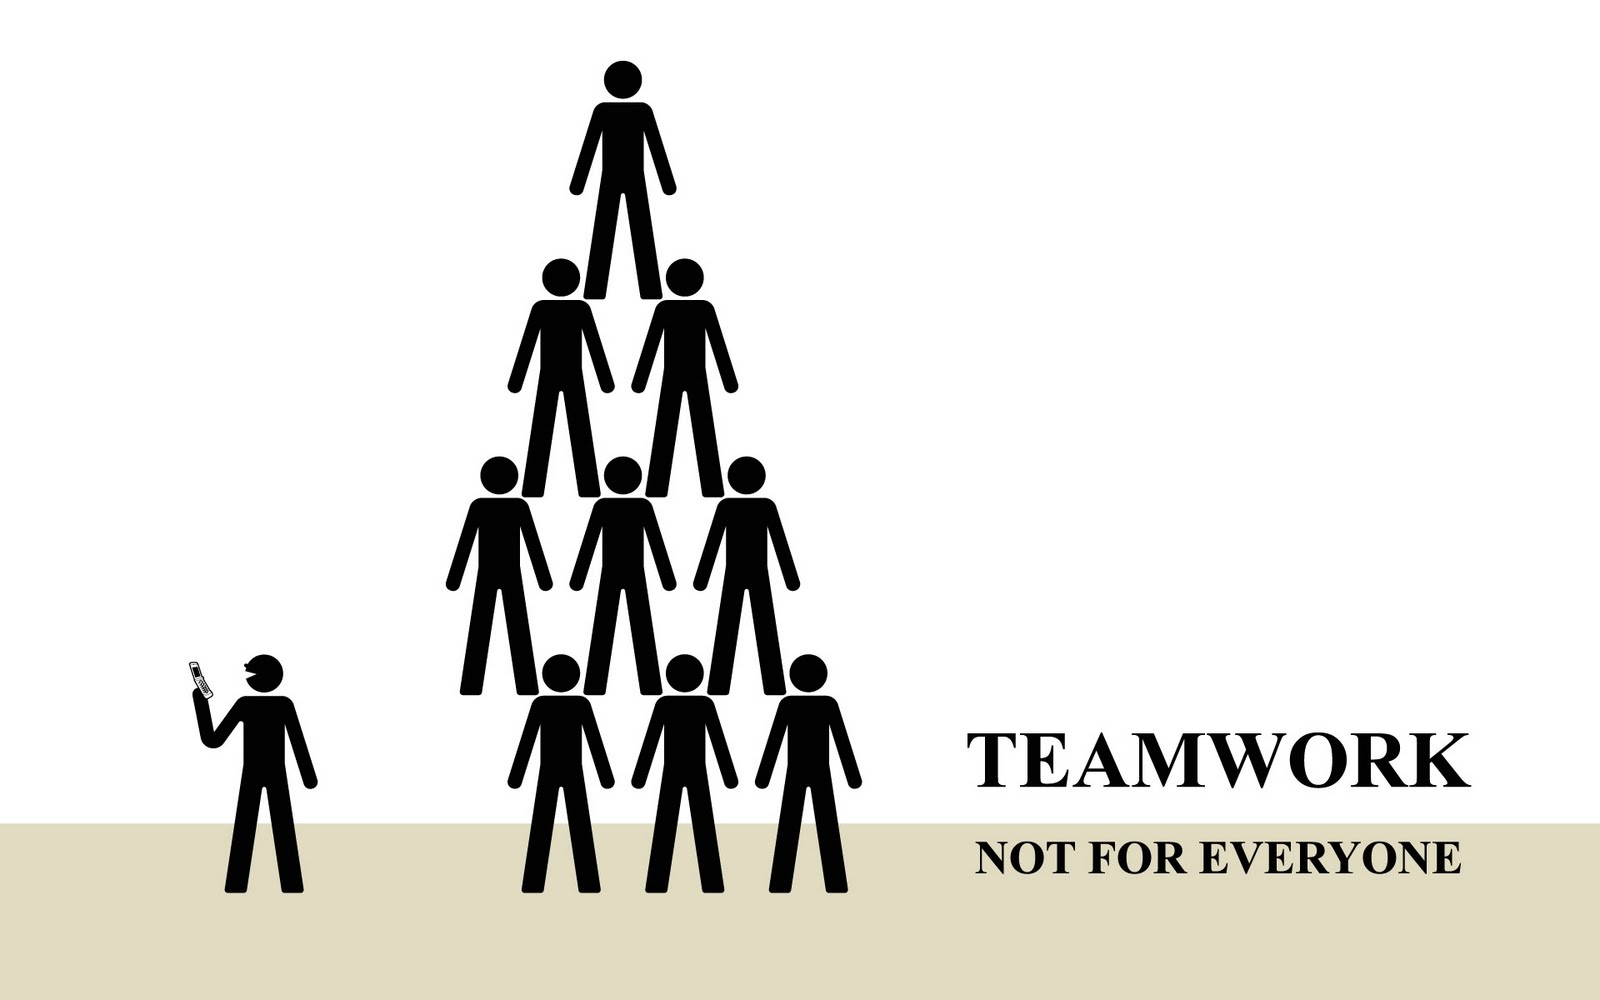 funny office illustrations for team work backgrounds office wallpapers